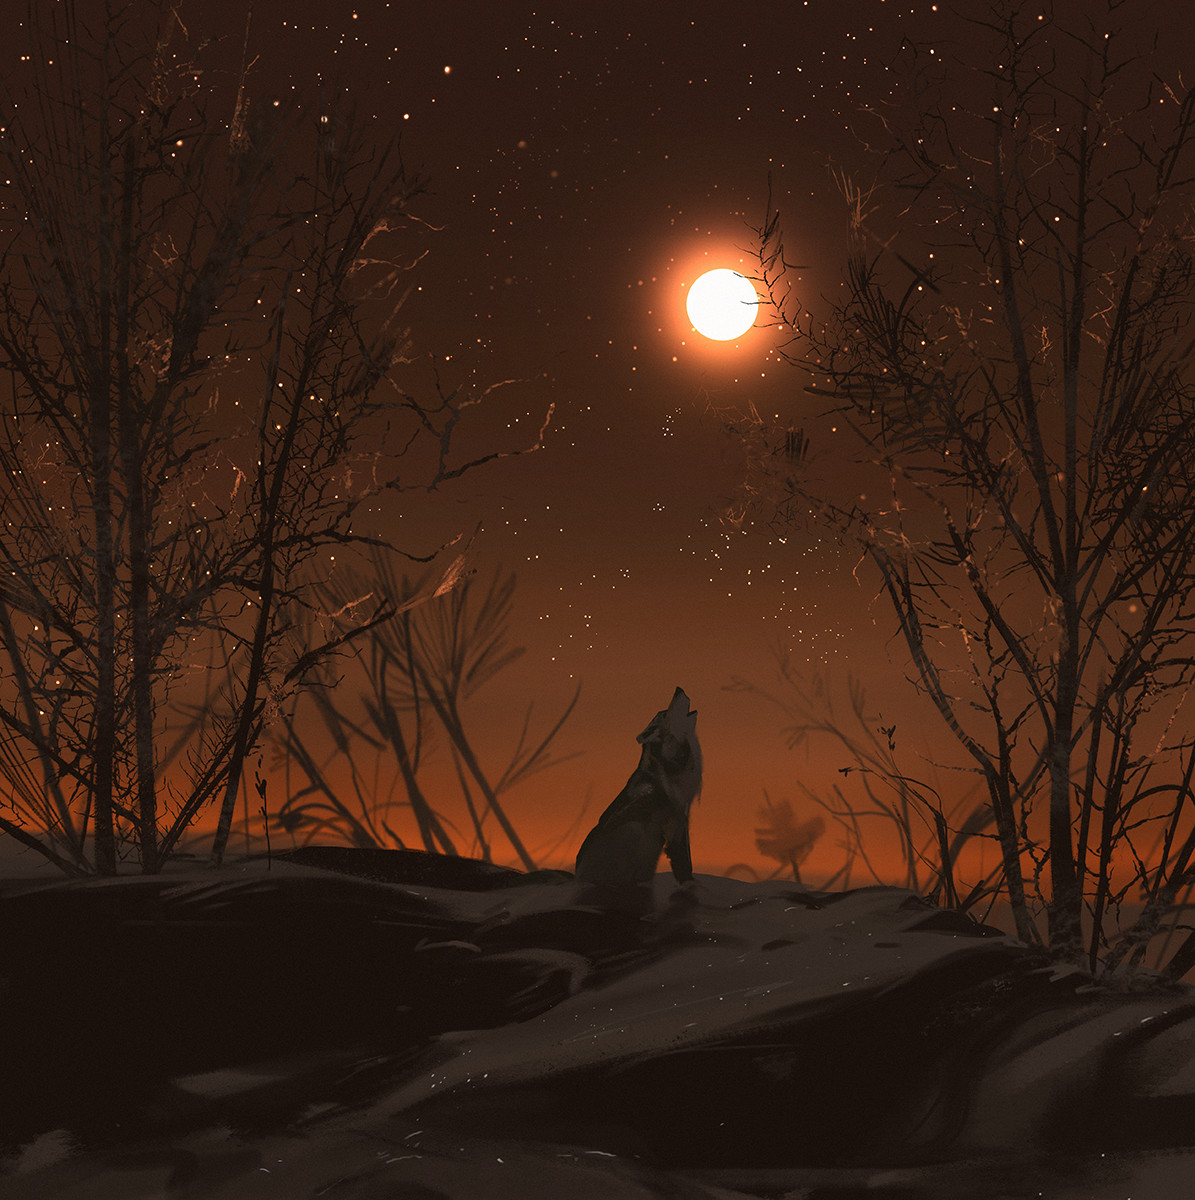 Sketch collection 29 2018 Howl of the wolf, Atey Ghailan_03